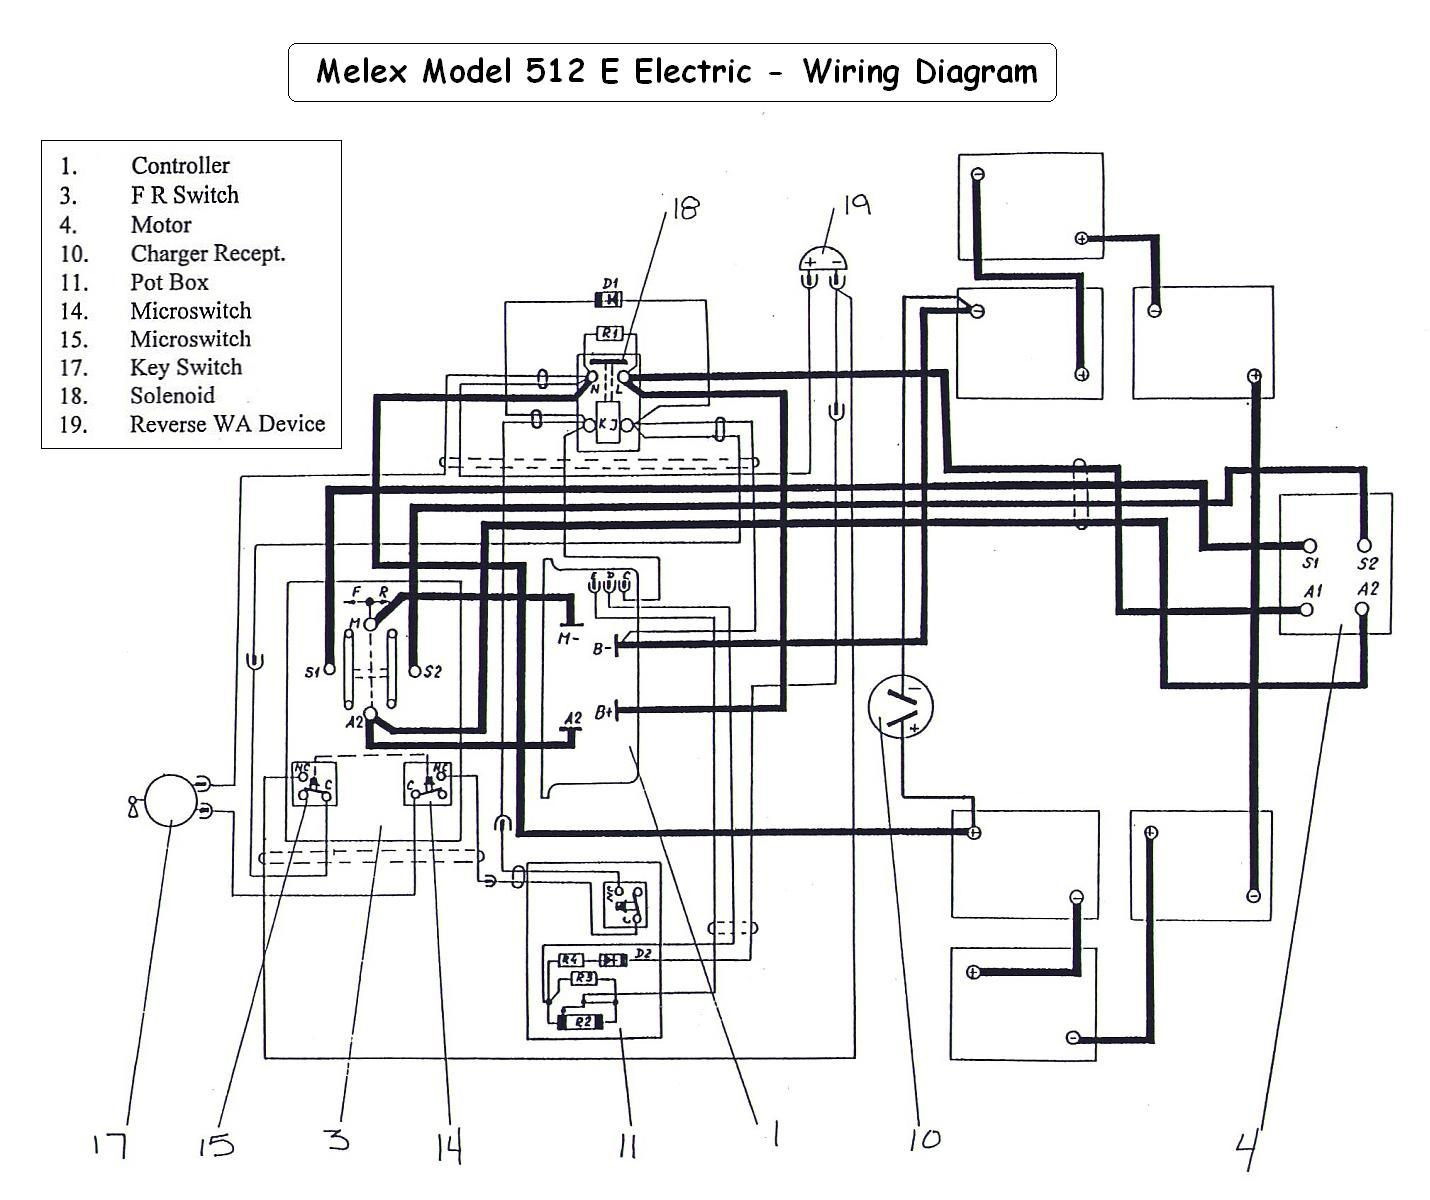 yamaha g19e golf cart lights wiring diagram